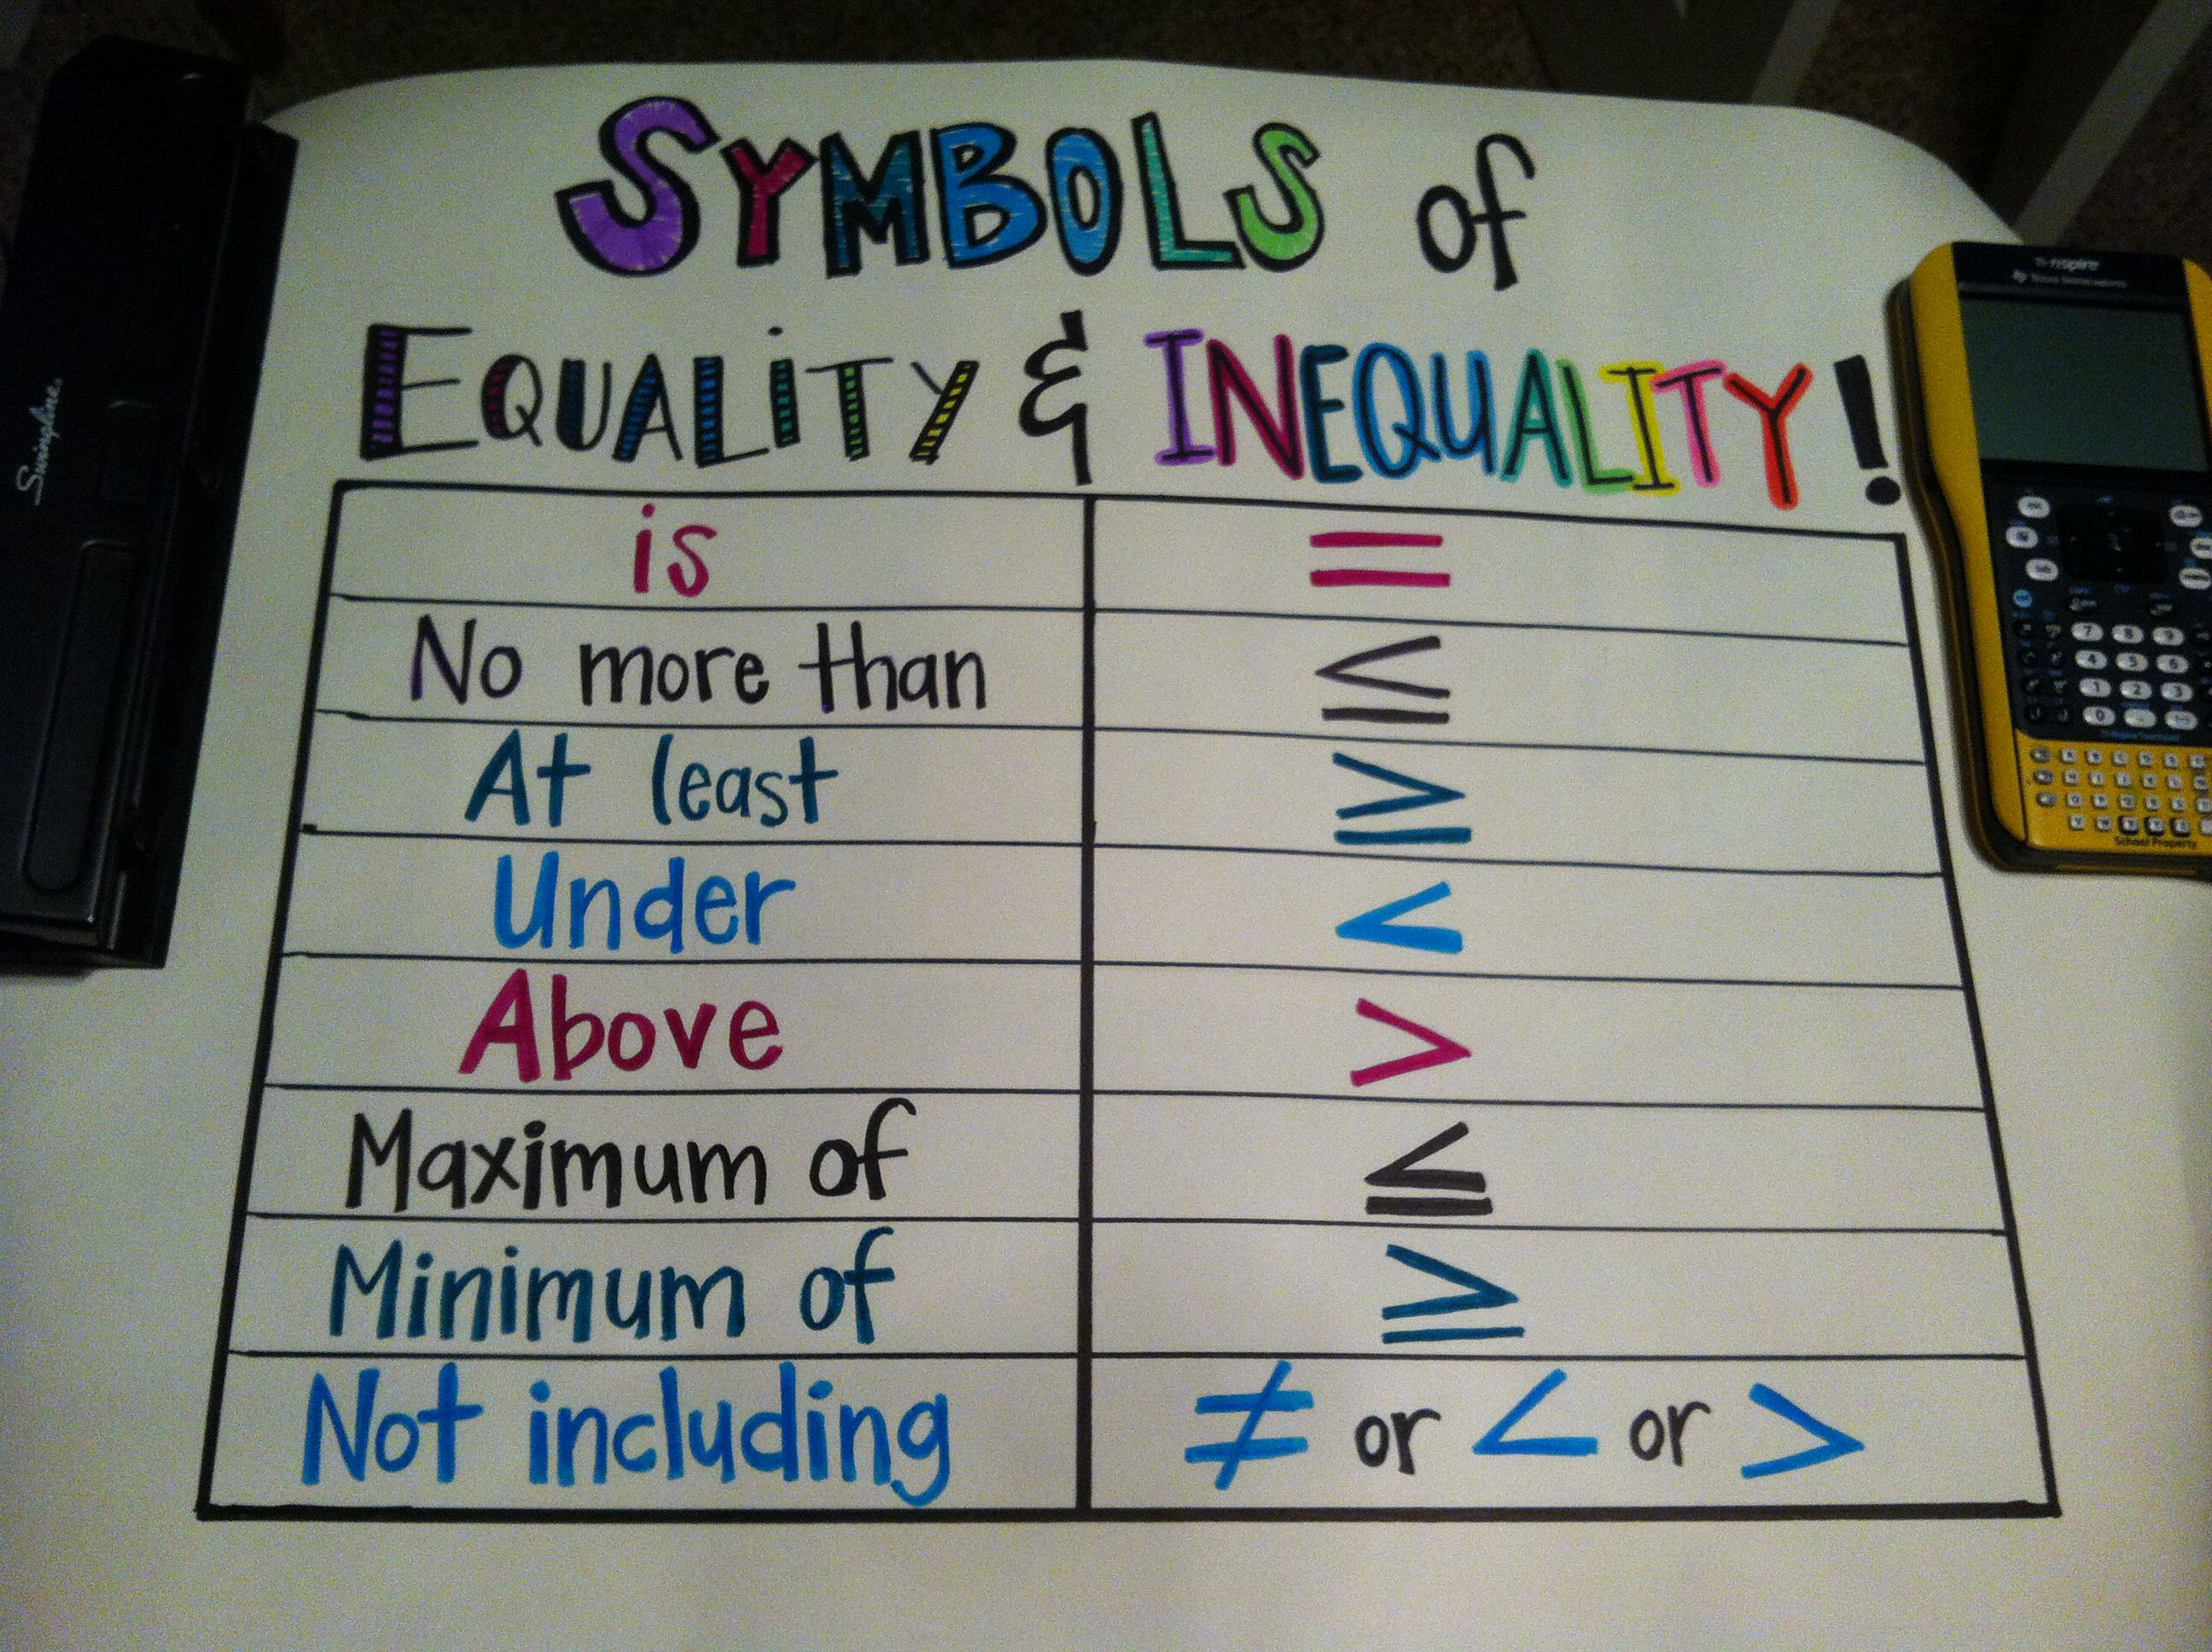 Symbols Of Equality And Inequality Used Specific